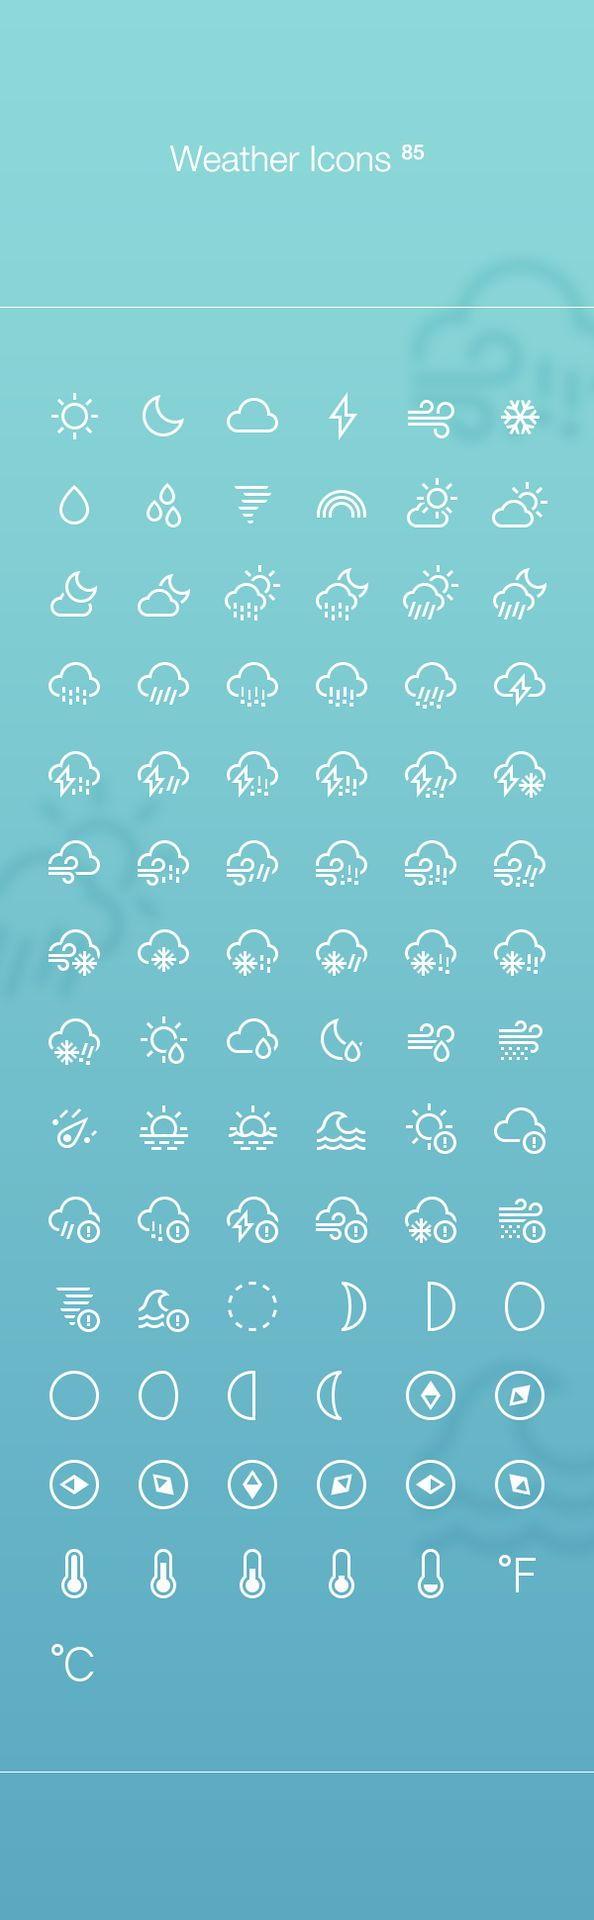 KDS Icons  Logos Inspitarions Board by Web Design Freebies / Find us in http://www.kds.com.ar or Facebook/KDSARG and Twitter /KDSARG / Tags: #icons #logos #design more on http://html5themes.org